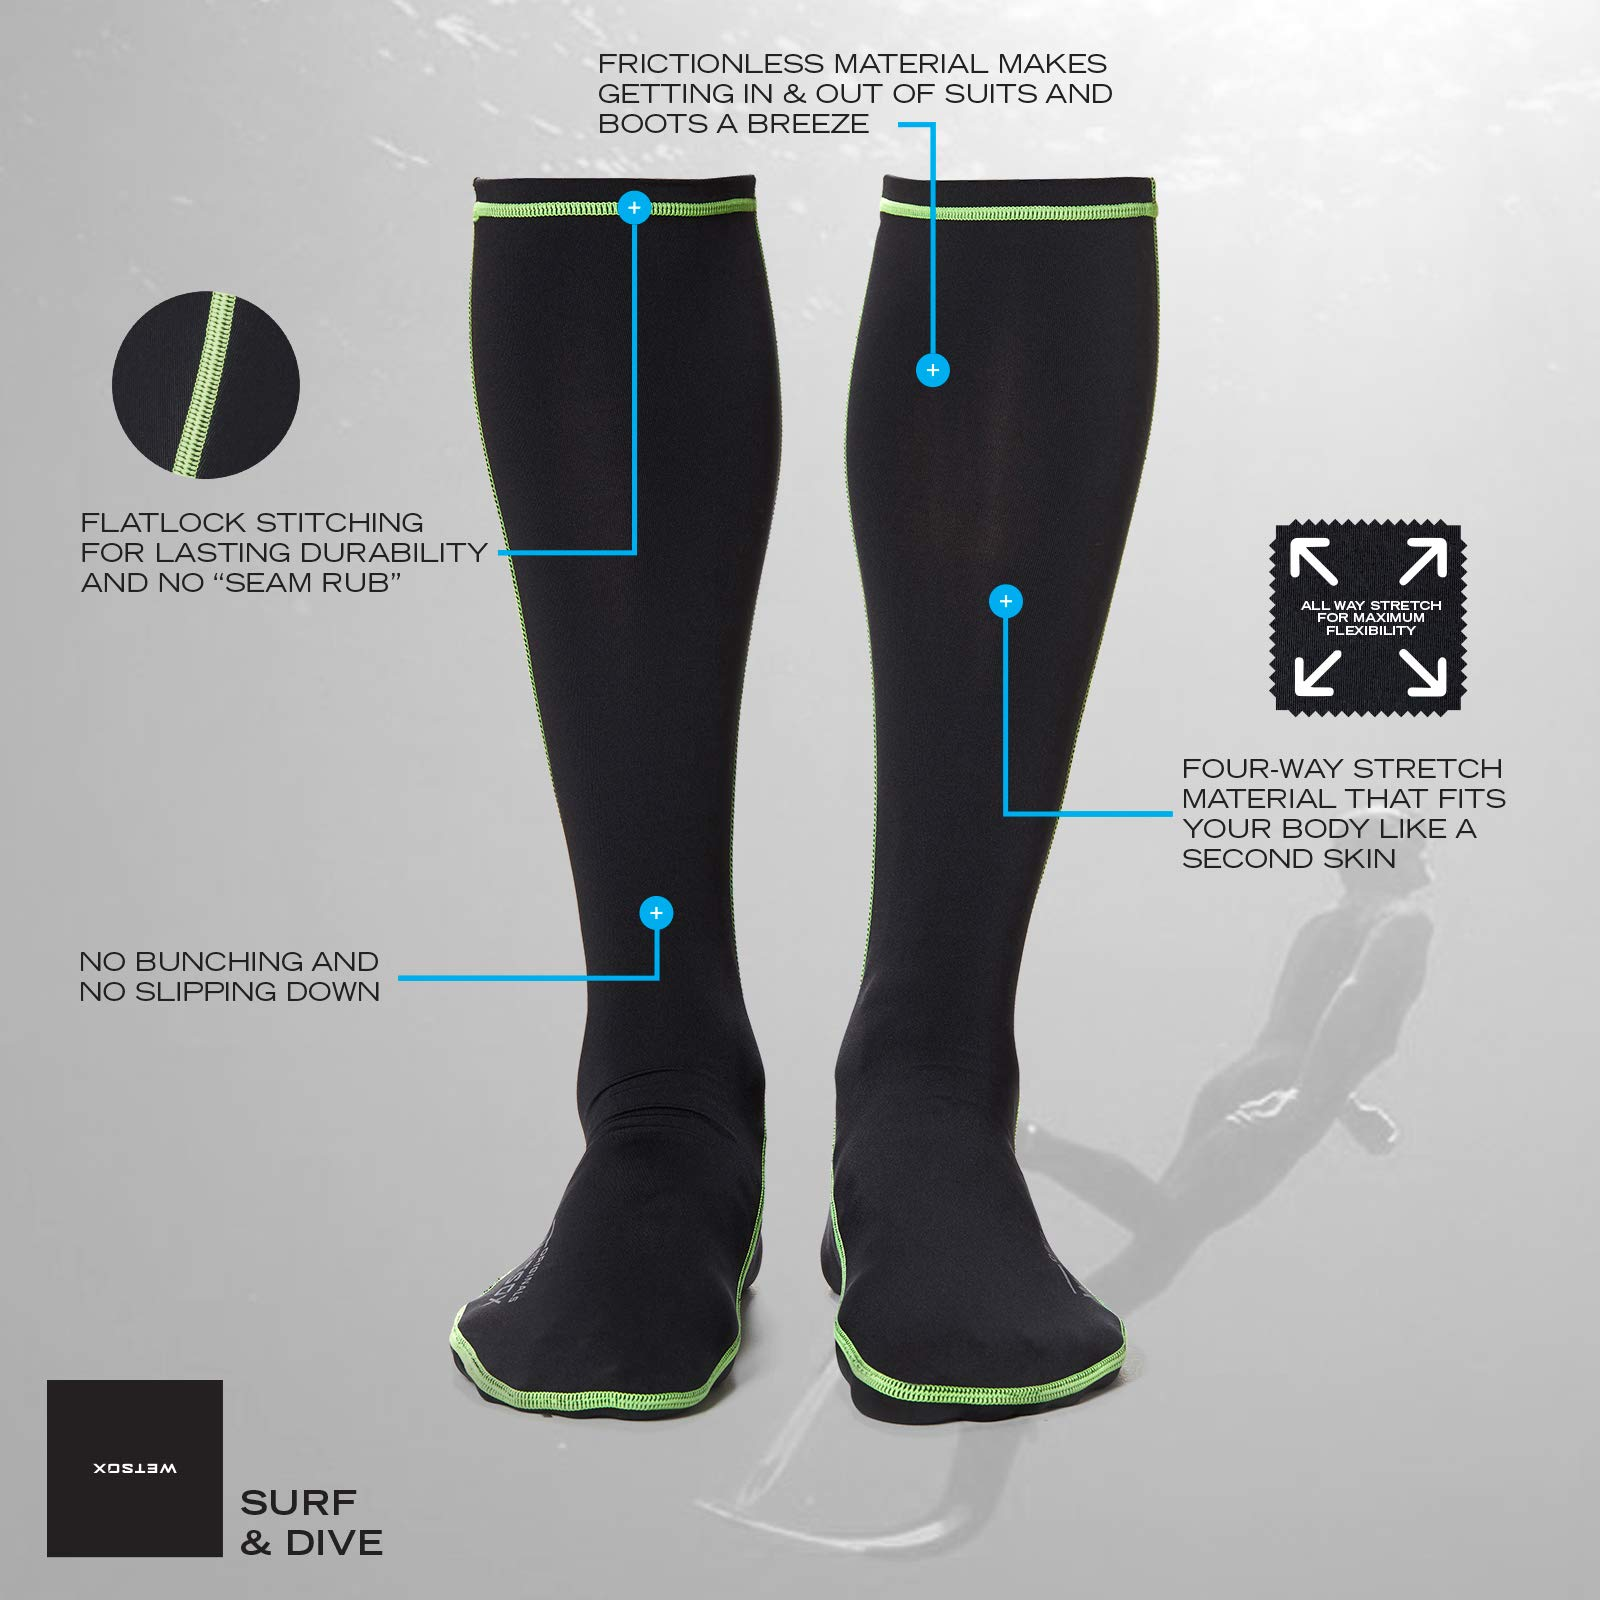 WETSOX Frictionless Wetsuit Boot Socks Slip Easily In/Out of Gear(Black, Medium) by WETSOX